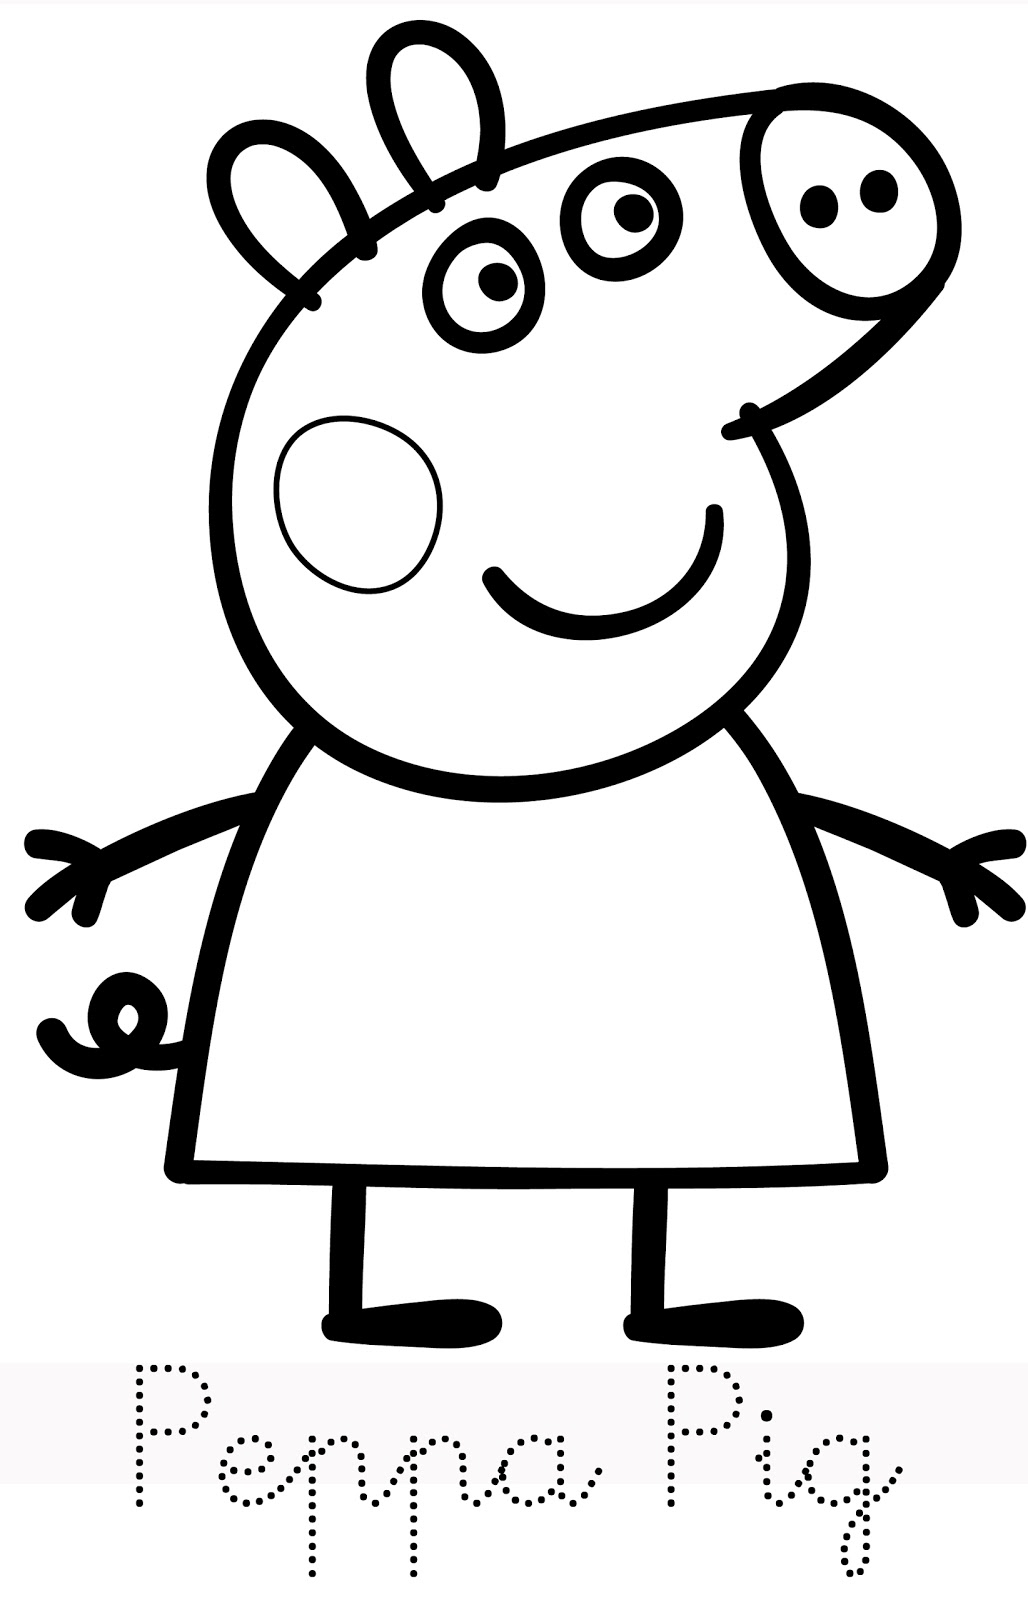 Baby potatoes family of peppa pig for Peppa pig cake template free